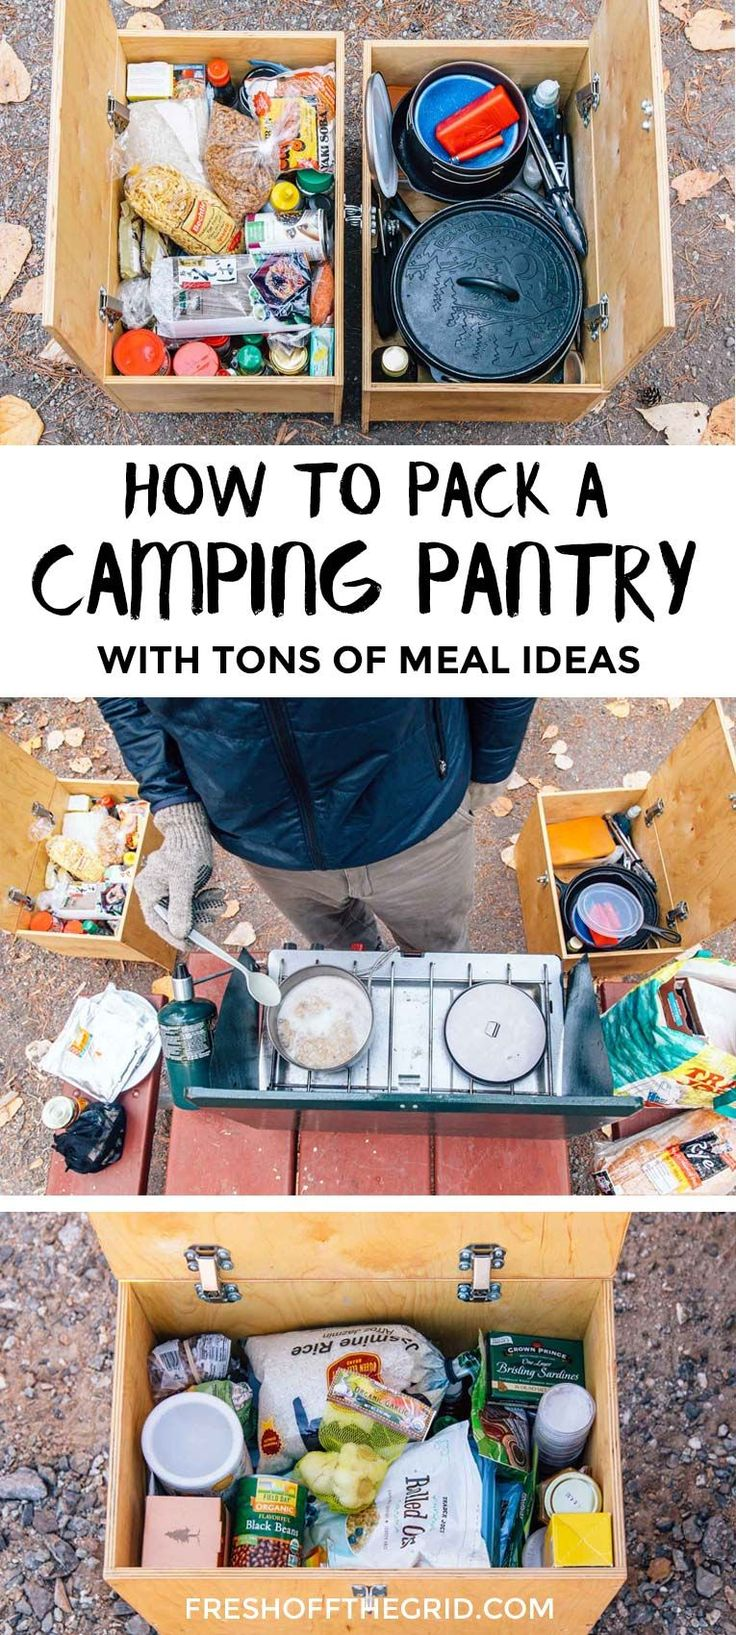 How to stock a Camping Pantry tips + tons of easy camping meal ideas! Always be prepared to cook the best camping food on your adventures!